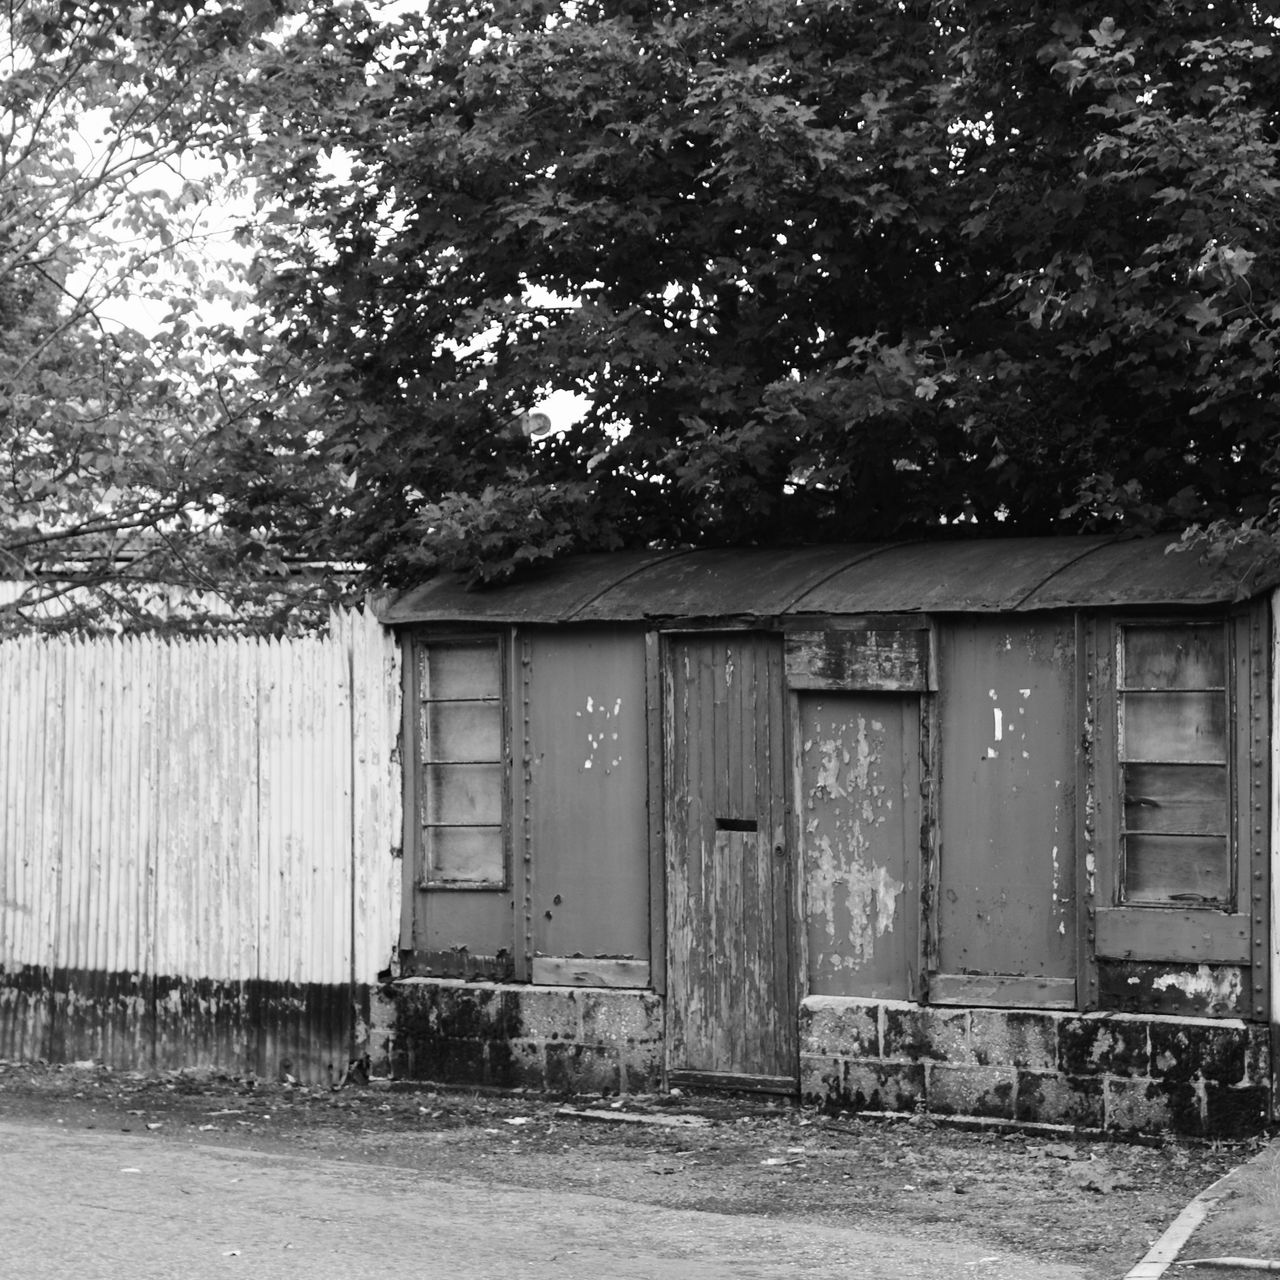 Maud Depot Abandoned Architecture Building Exterior Built Structure Closed Depot Door No People No People Old Abandoned Places Old Old Railway Carriage Outdoors Ruined Building Scotland Wood - Material